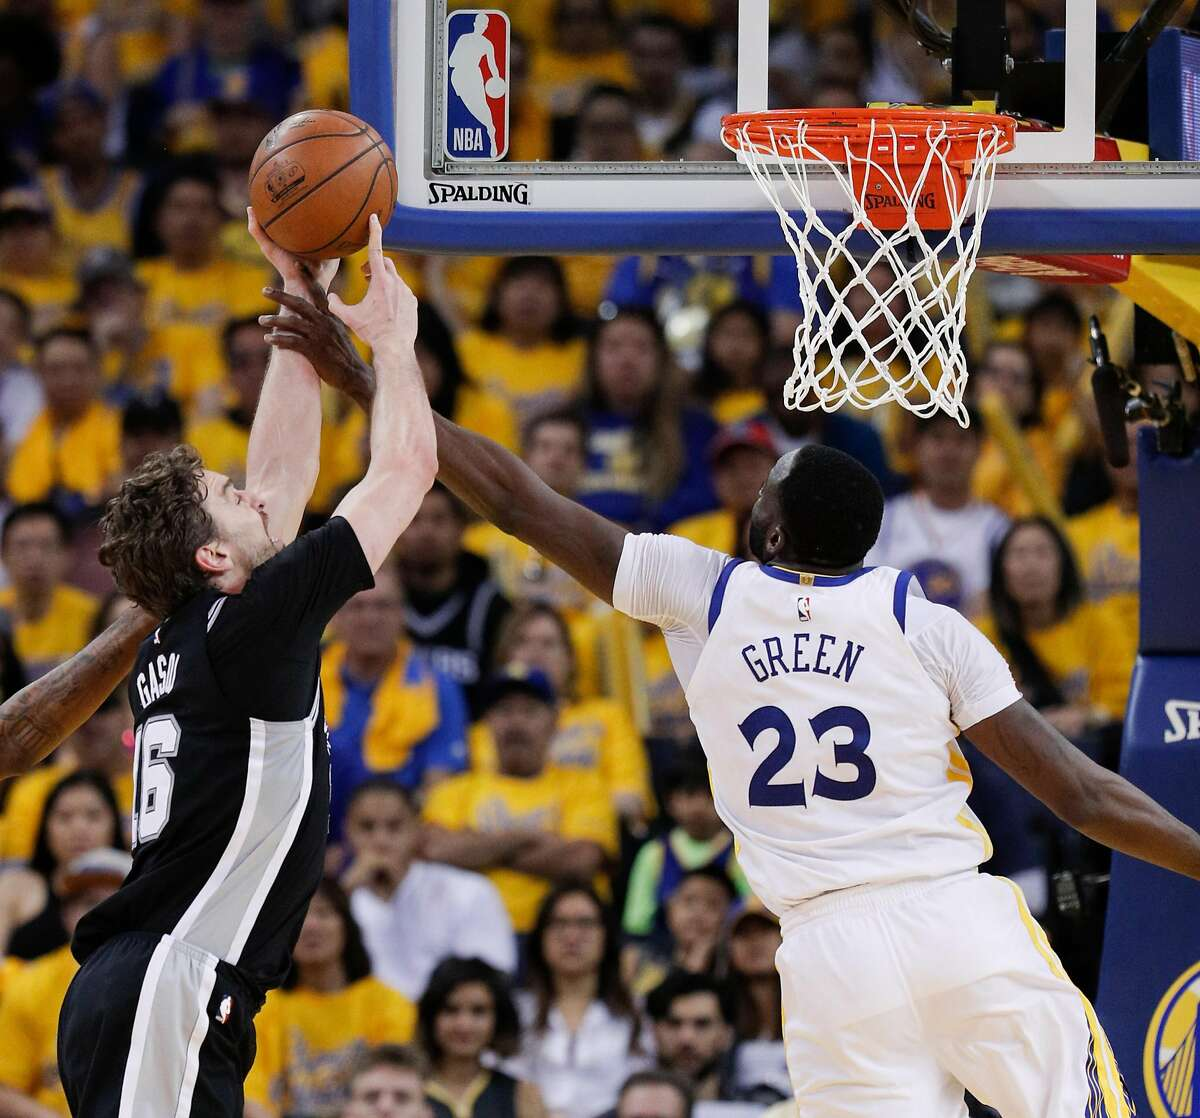 Golden State Warriors' Draymond Green fouls San Antonio Spurs' Pau Gasol in the fourth quarter during game 1 of round 1 of the Western Conference Finals at Oracle Arena on Saturday, April 14, 2018 in Oakland, Calif.